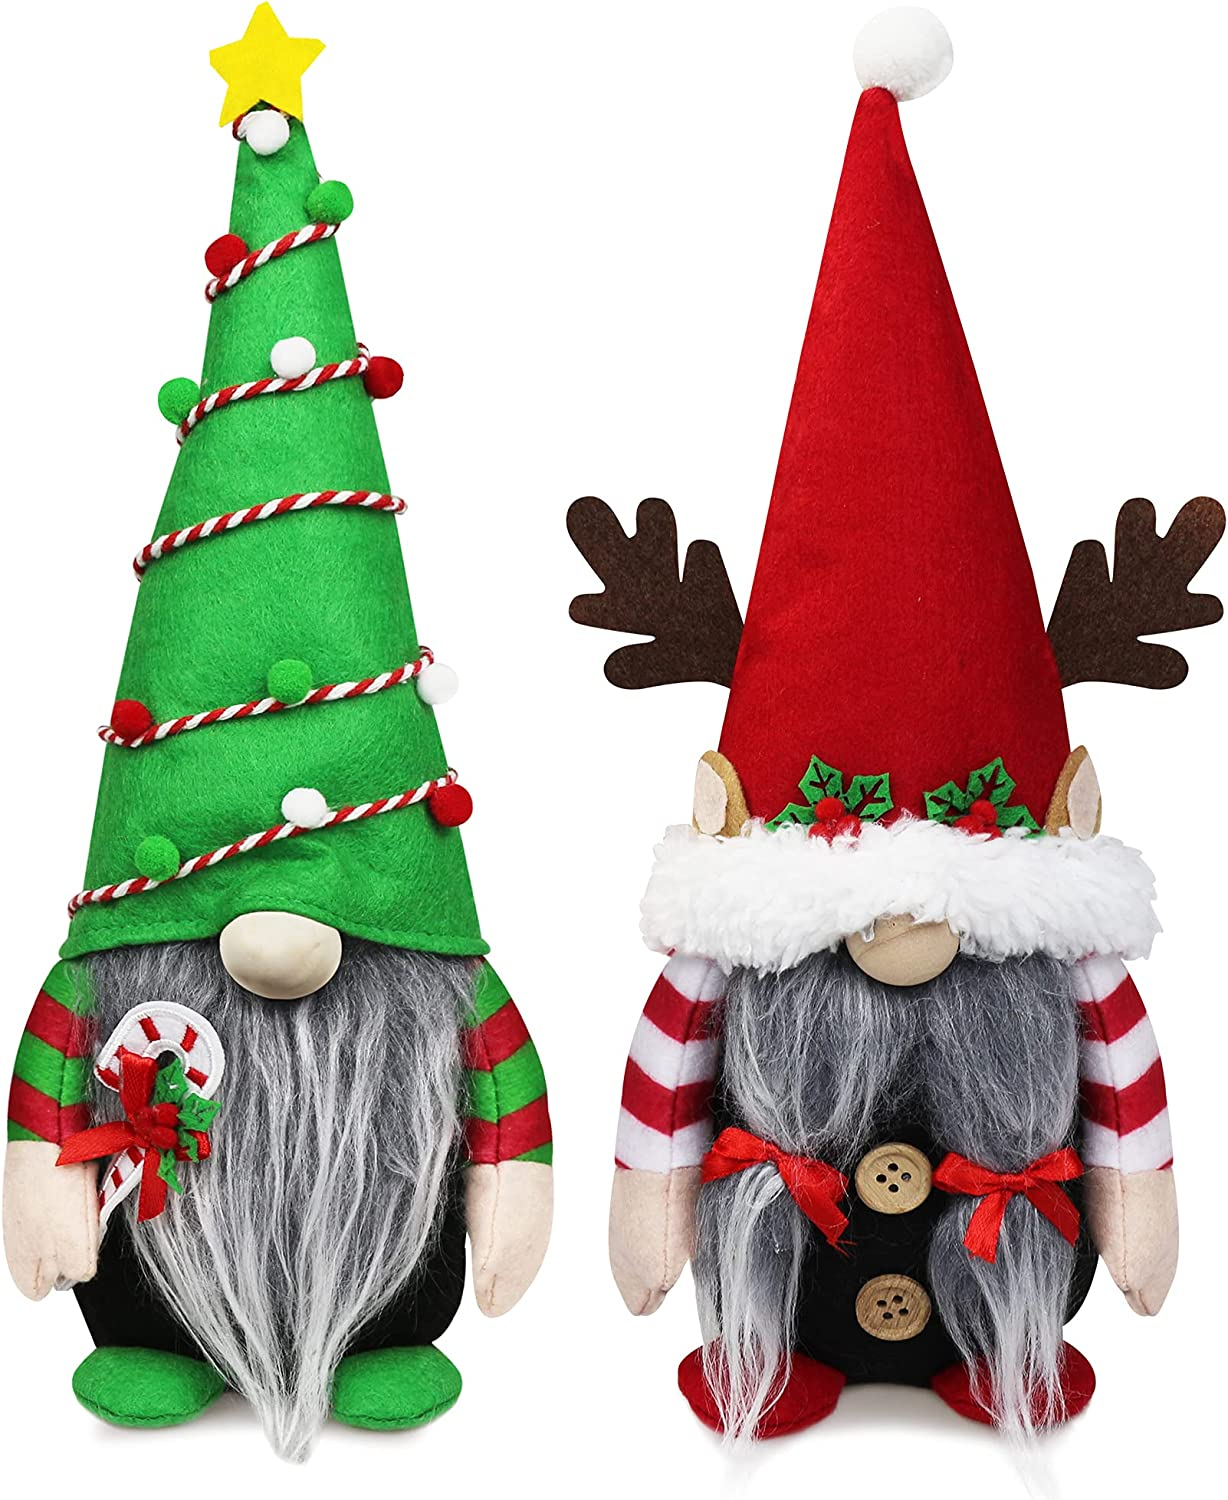 Christmas Gnome Plush Elf Decorations - Mr and Mrs Xmas Holiday Handmade Scandinavian Tomte for Christmas Decorations - Tiered Tray Decor, Holiday Presents, Home Office Table Decorations